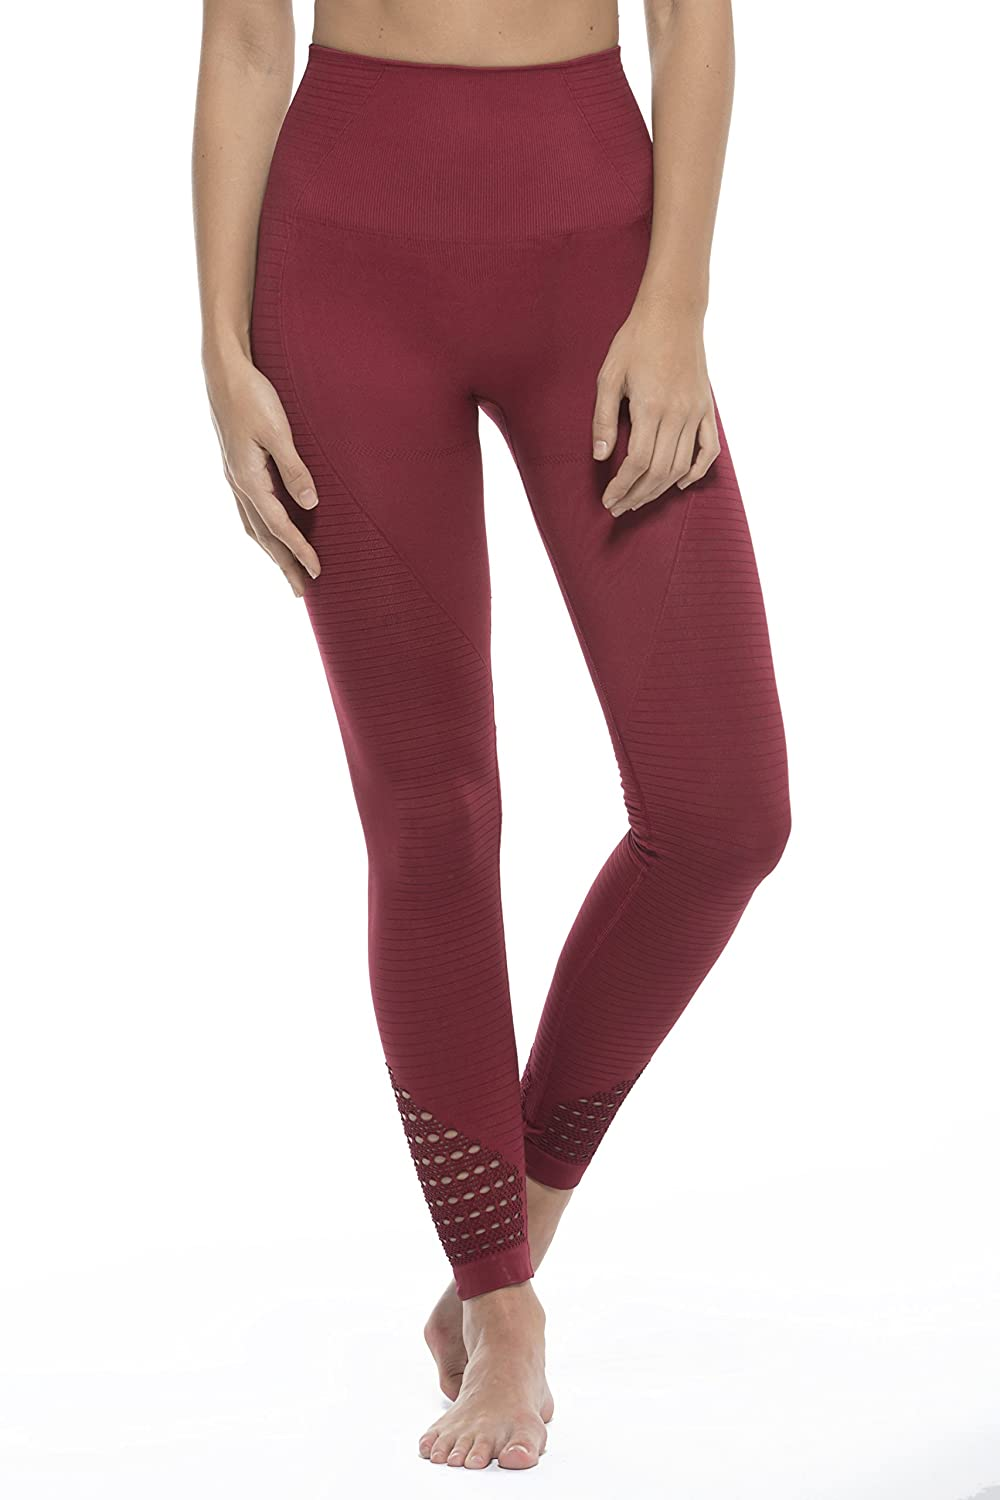 5d3c51a38fffc ... Workout Running Leggings Ankle, Seamless Tummy Control. Wholesale Price:  92% nylon 8% spandex ▻ MATERIAL ◅ 92 % nylon+8 % spandex, these yoga pants  ...